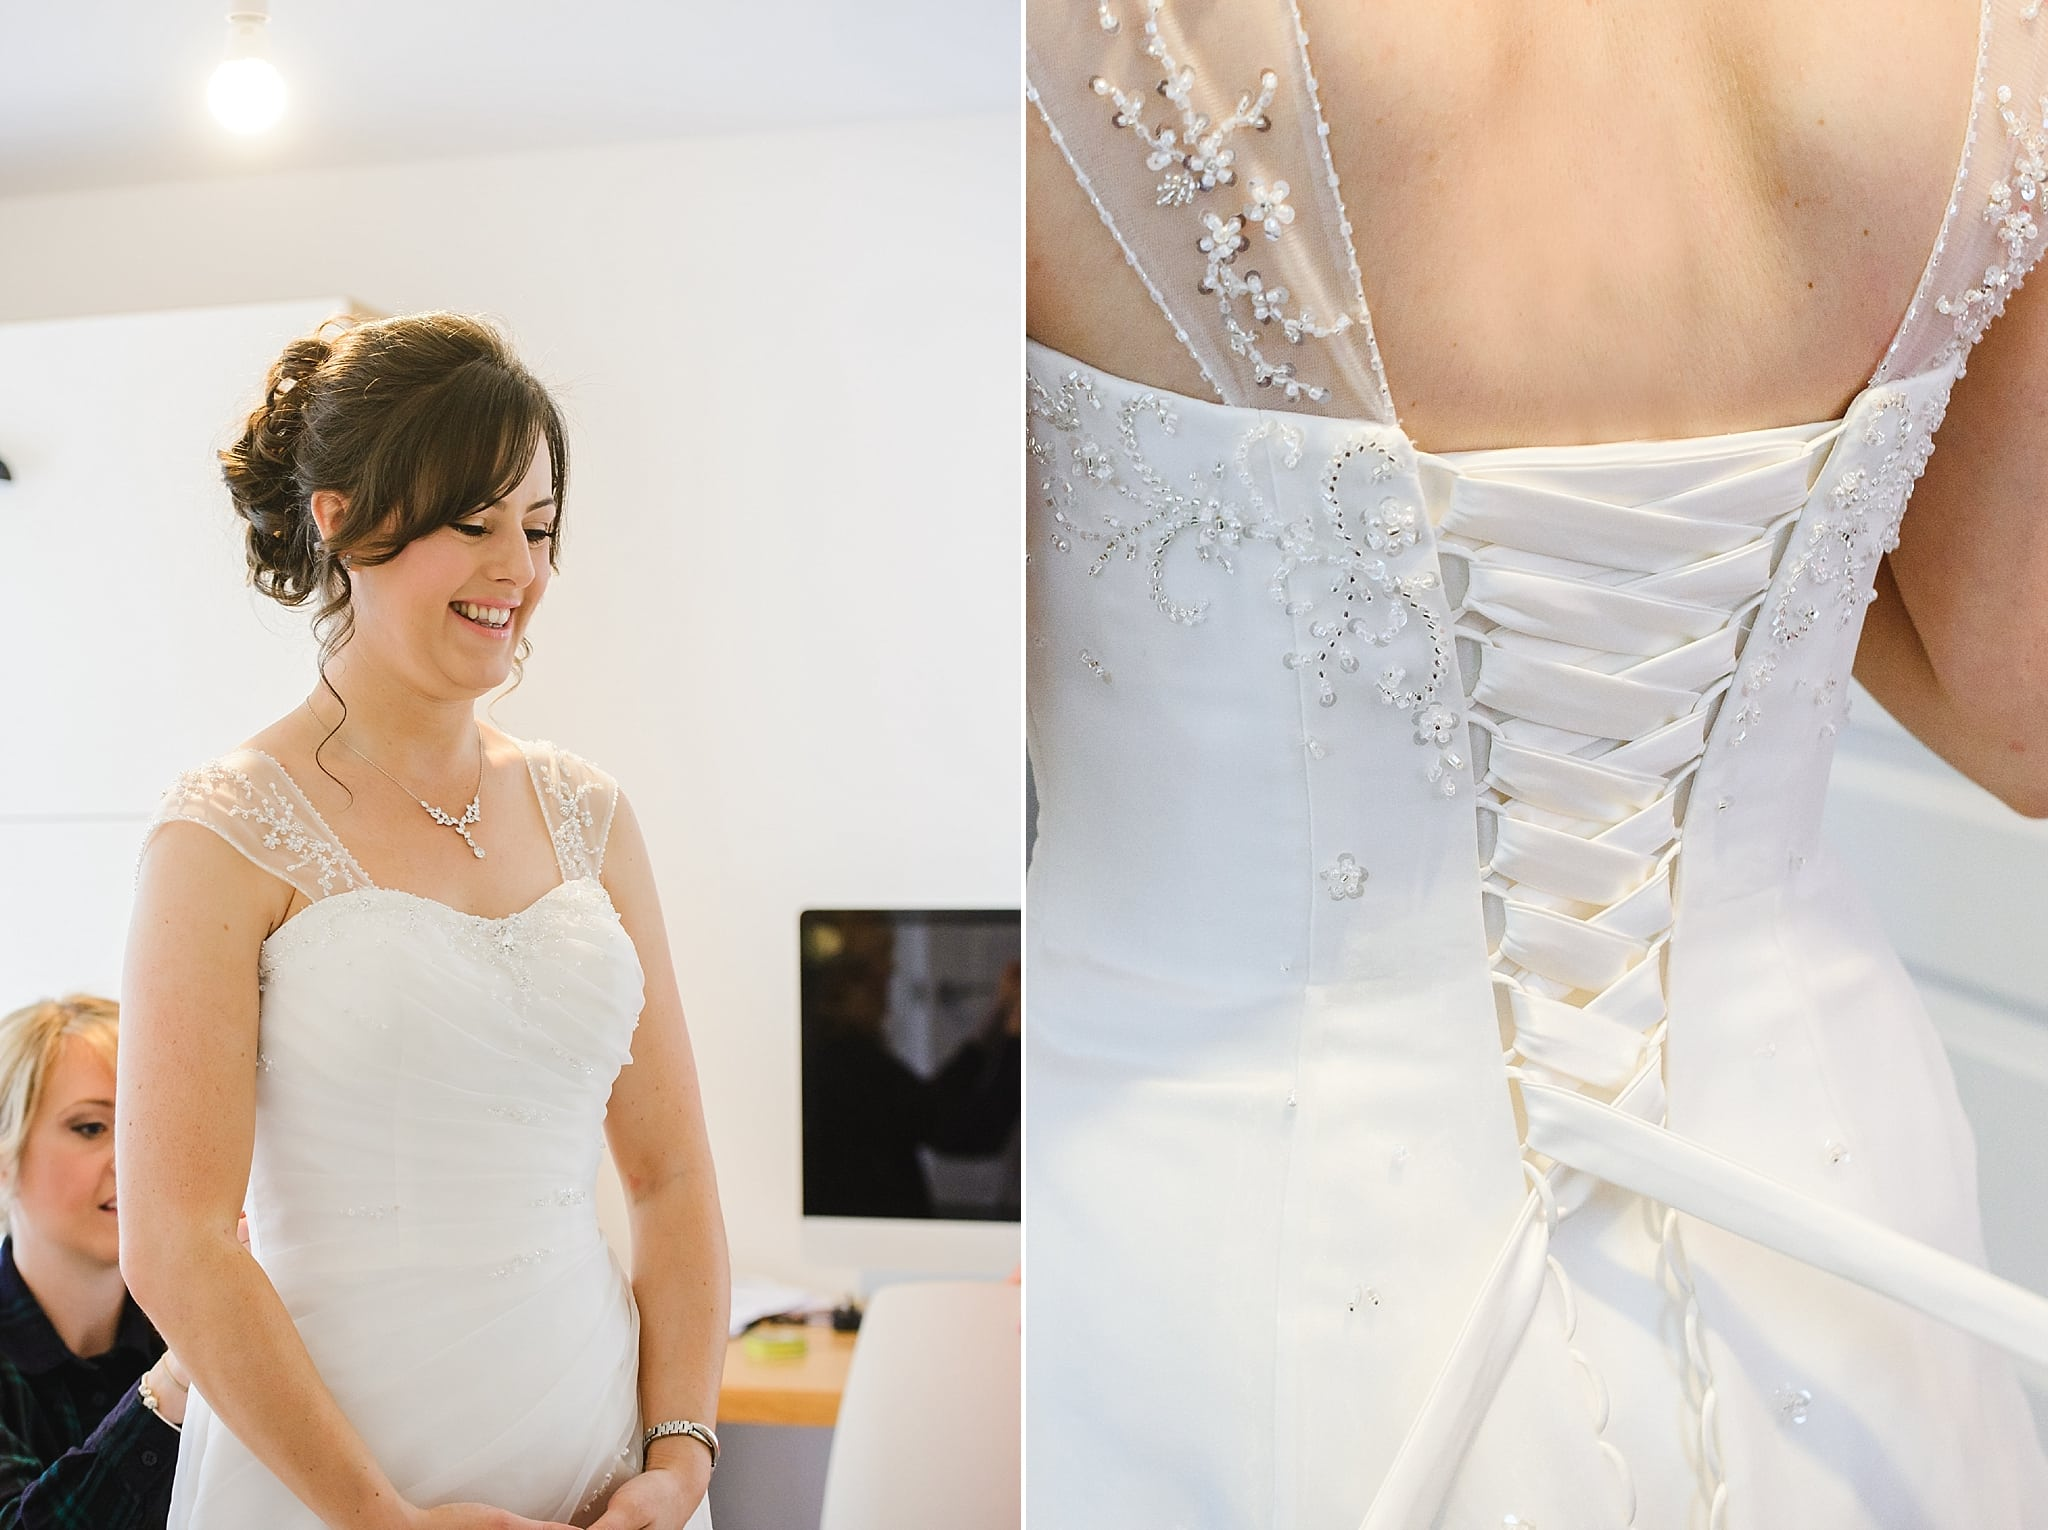 Bride getting ready into her wedding dress